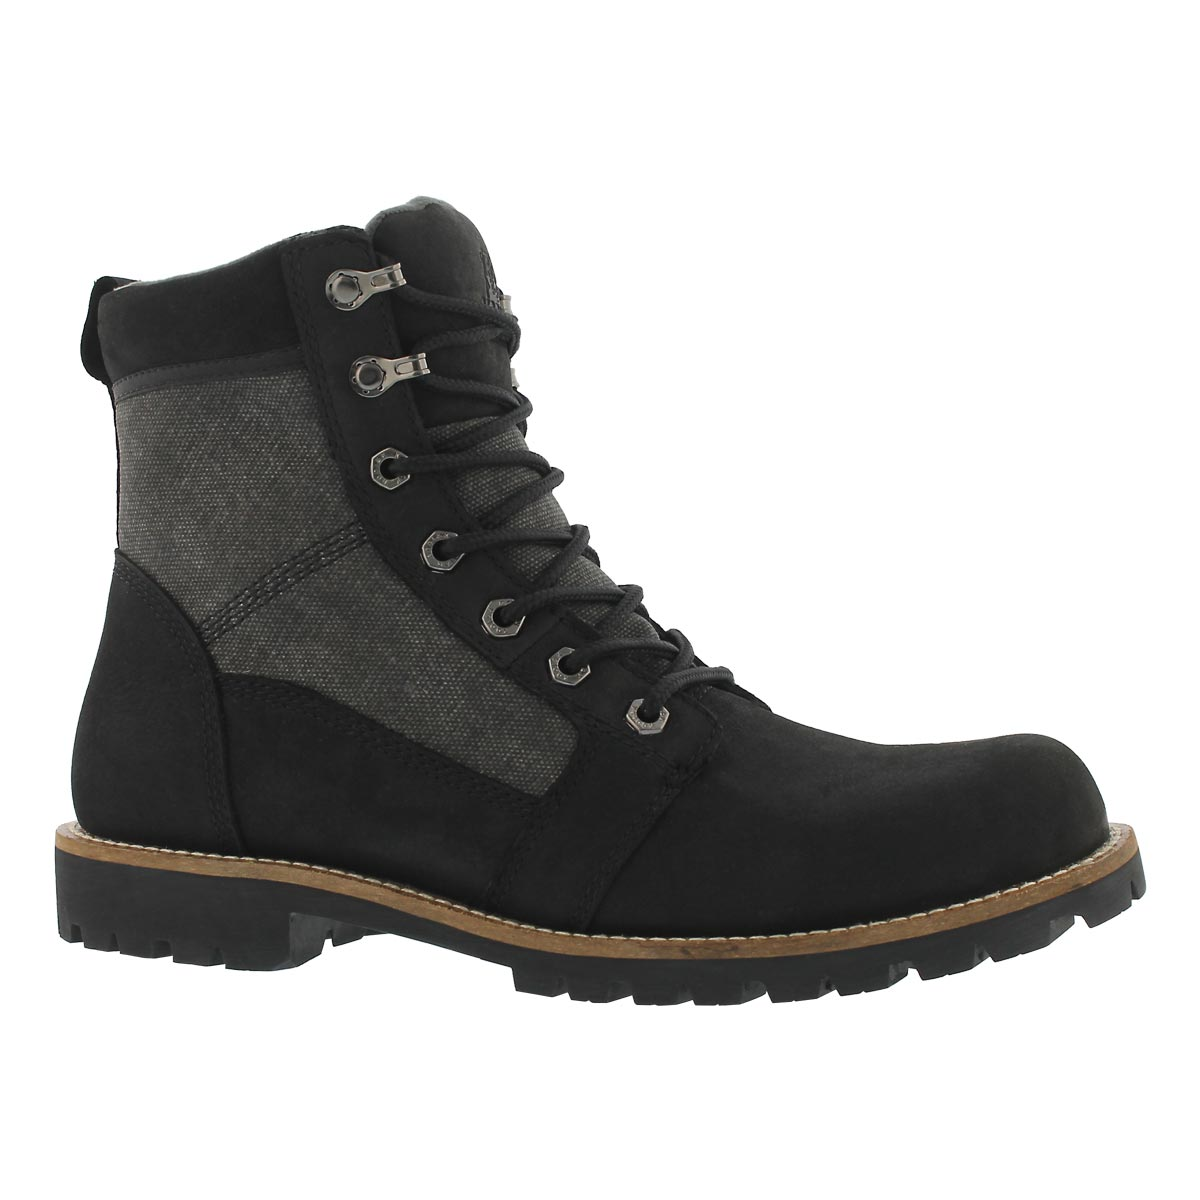 Mns Thane blk wtpf ankle boot